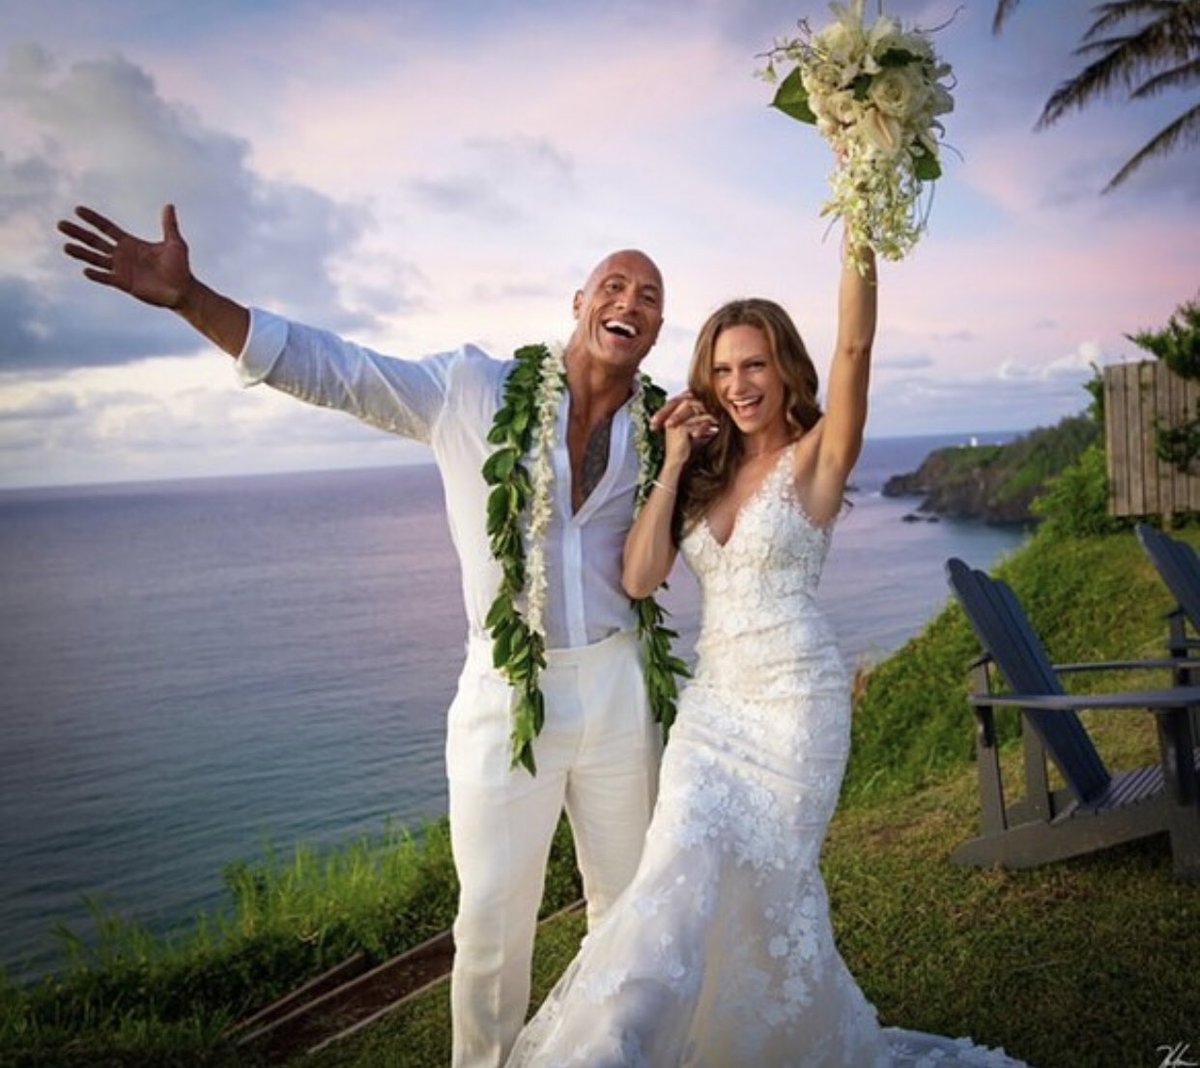 ¡Felicidades! Congrats to #TheRock and Lauren Hashian! The couple got married in Hawaii yesterday.  [: @hhgarcia41]<br>http://pic.twitter.com/exaJn8DNv2